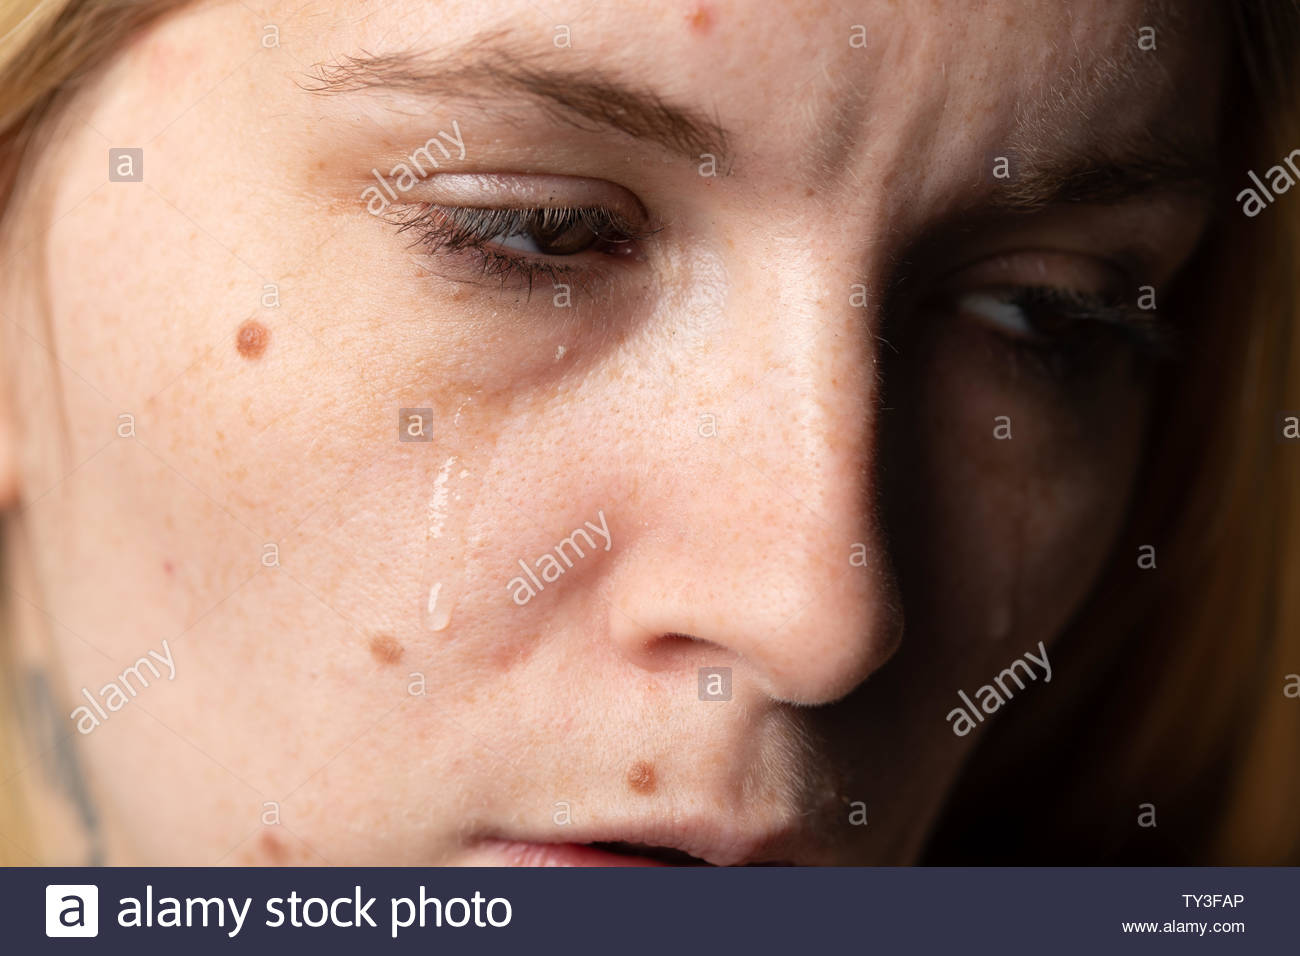 Woman with acne in tears - Stock Image